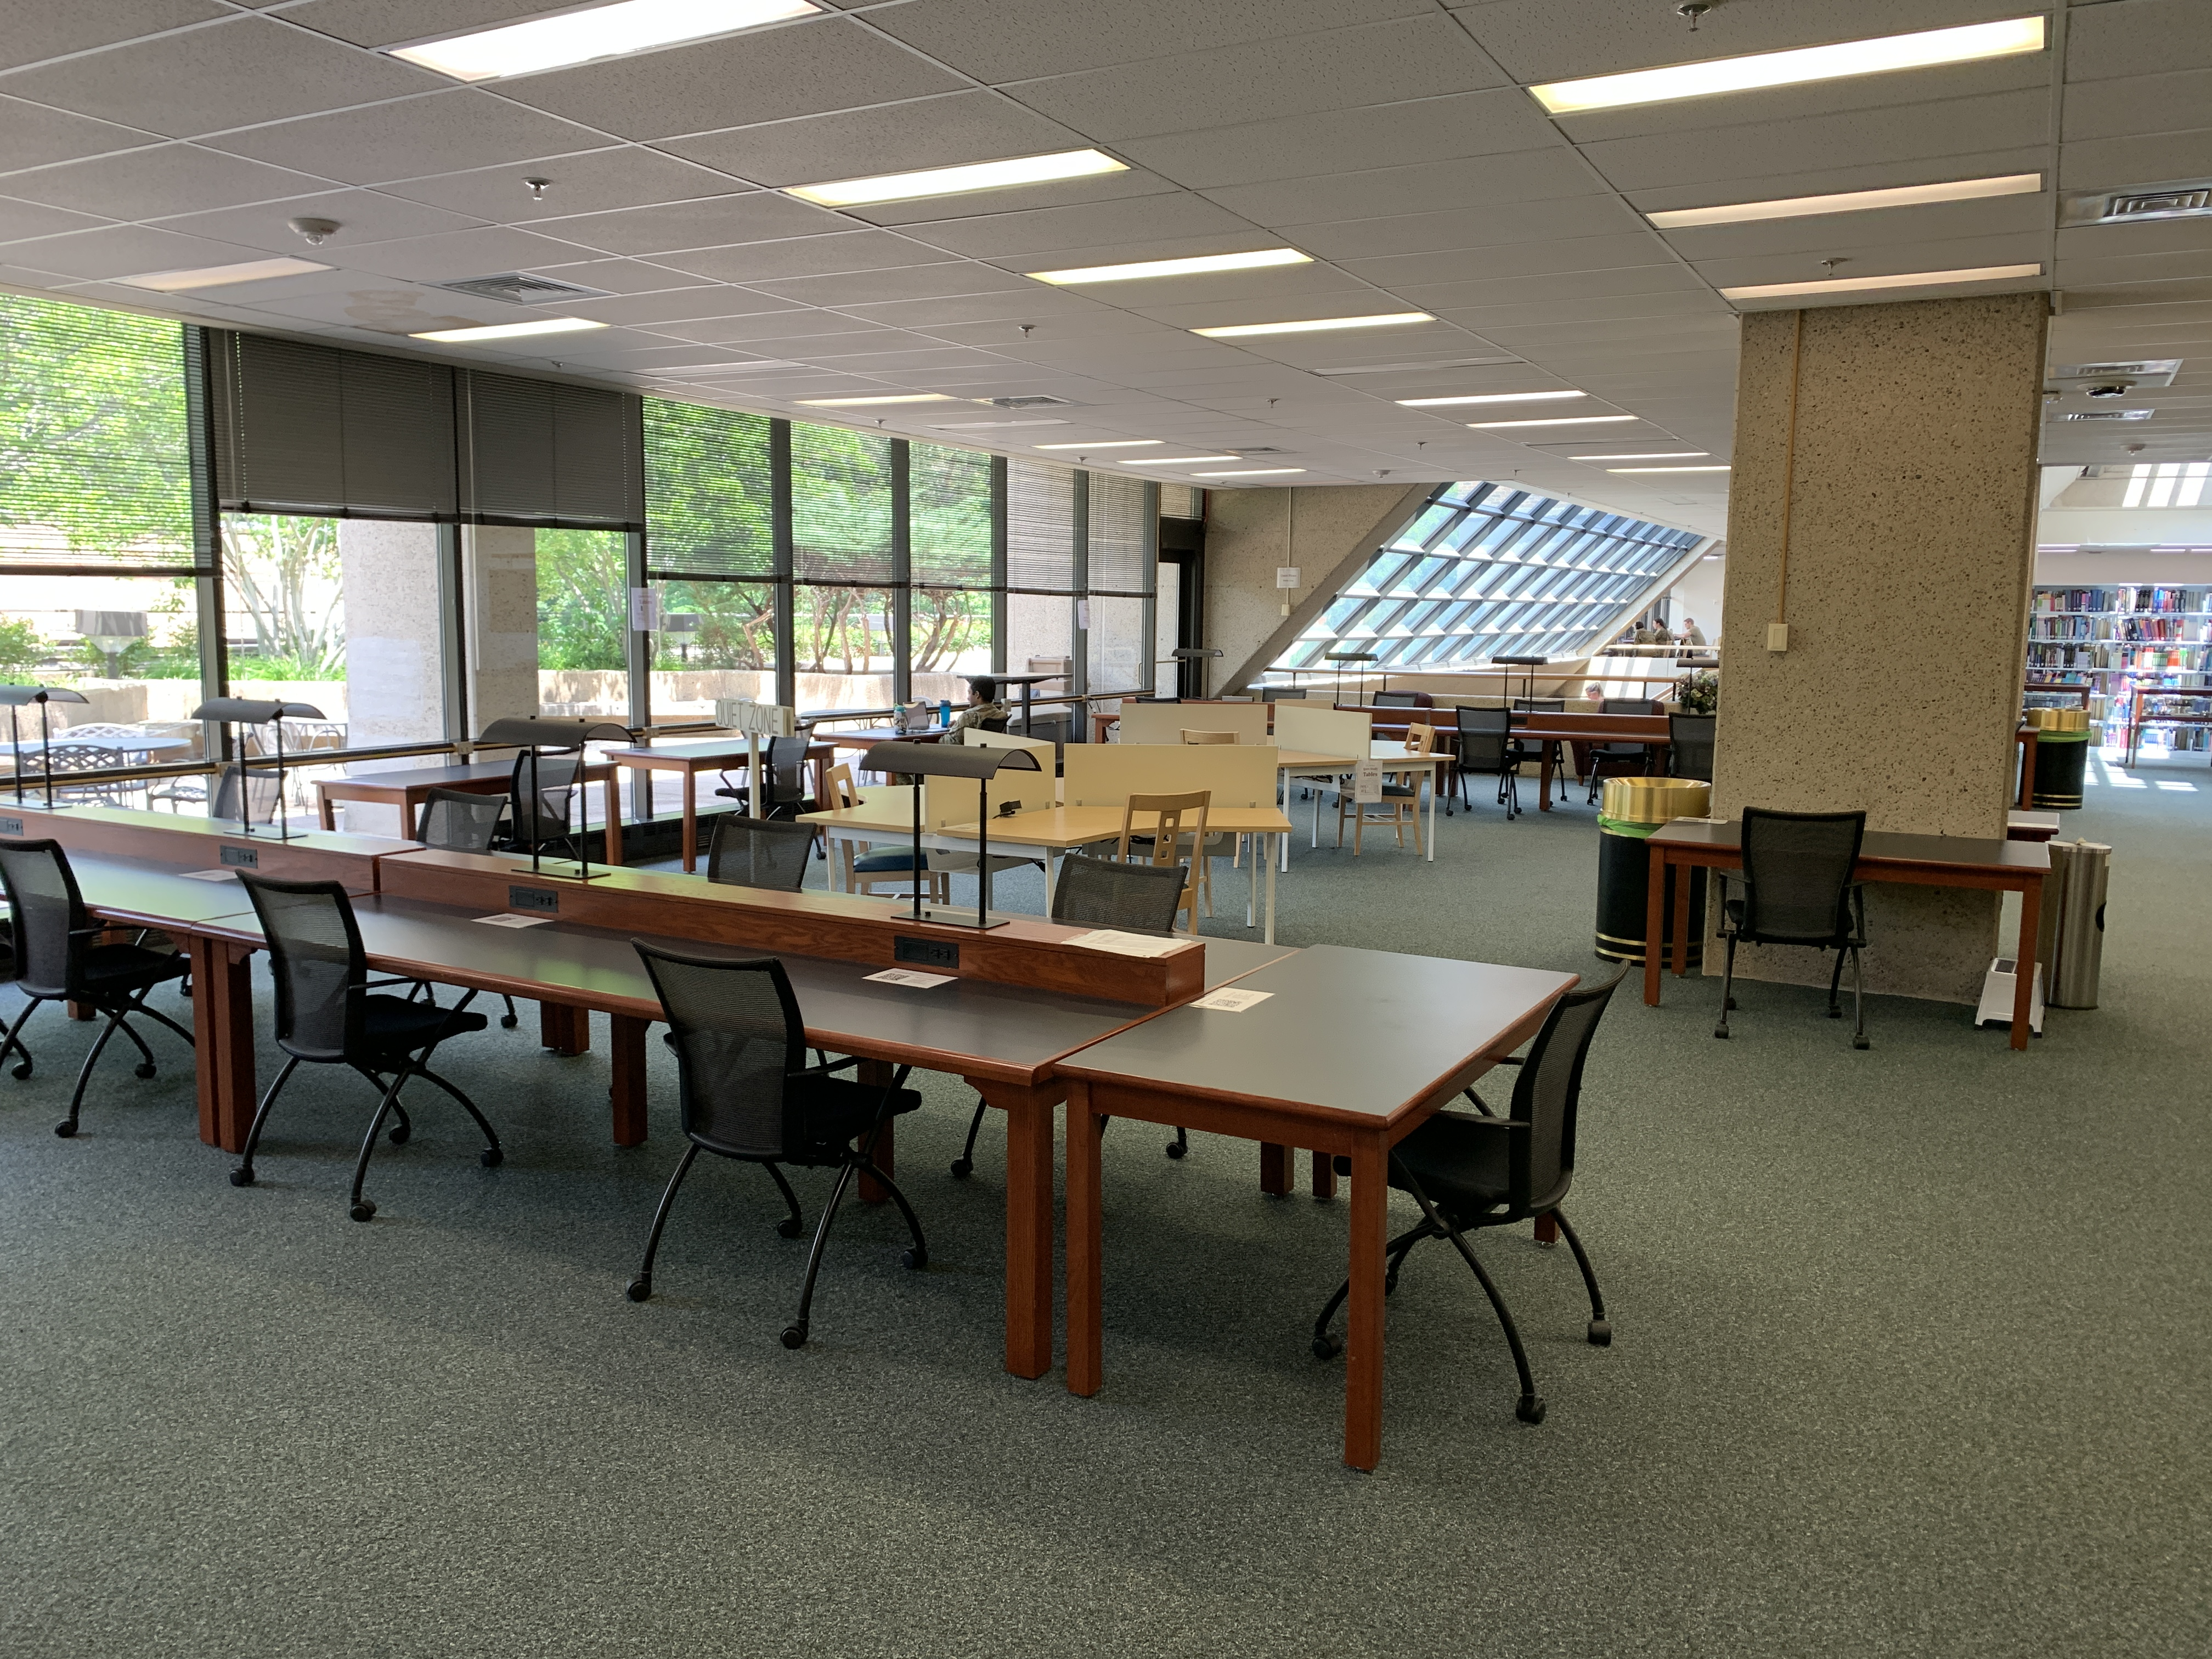 A picture of study tables on the second floor.